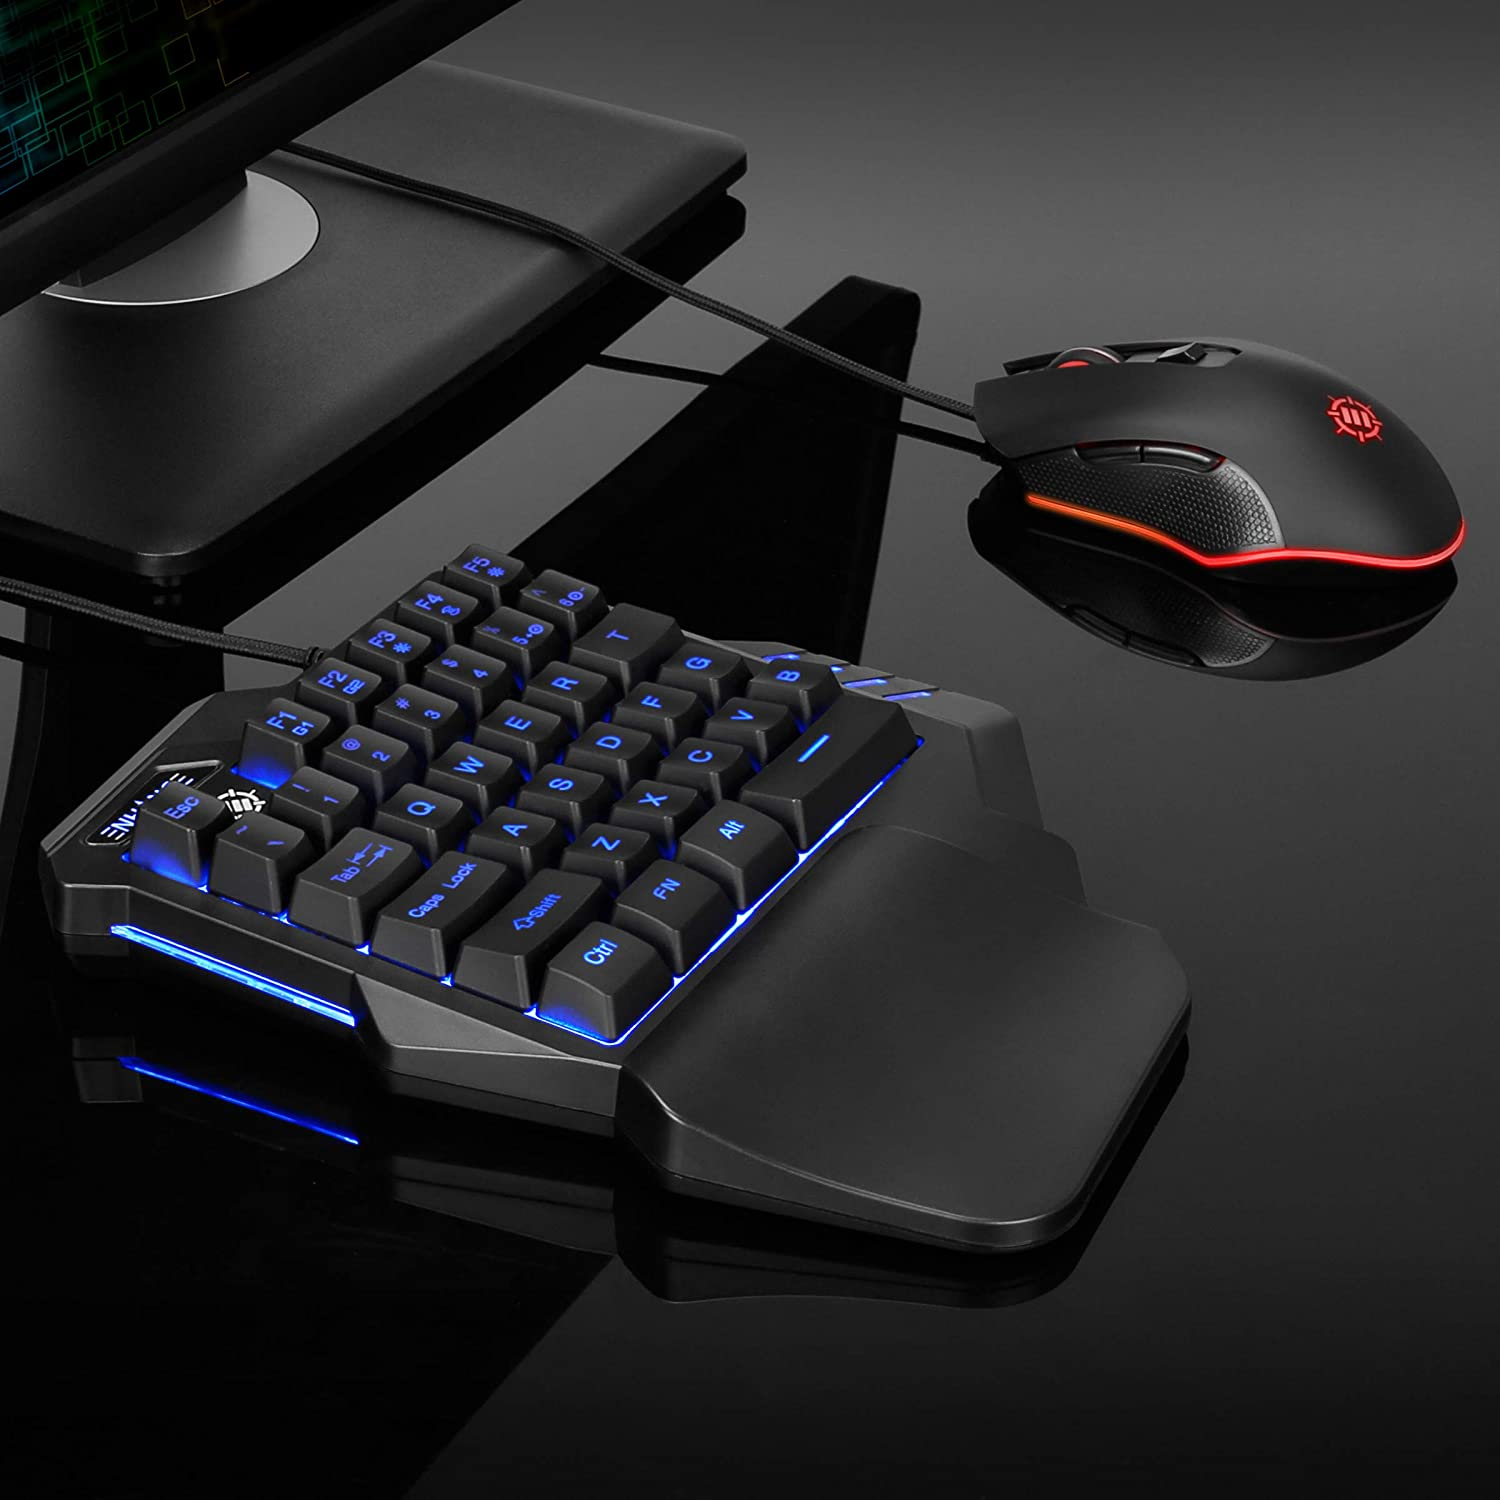 ENHANCE Gaming Keypad One Handed Keyboard Mini Gaming Keyboard- 7 Color LED Backlit Programmable Keys Ergonomic Wrist Pad and Braided USB Cable Great for Esports FPS /& Action Games